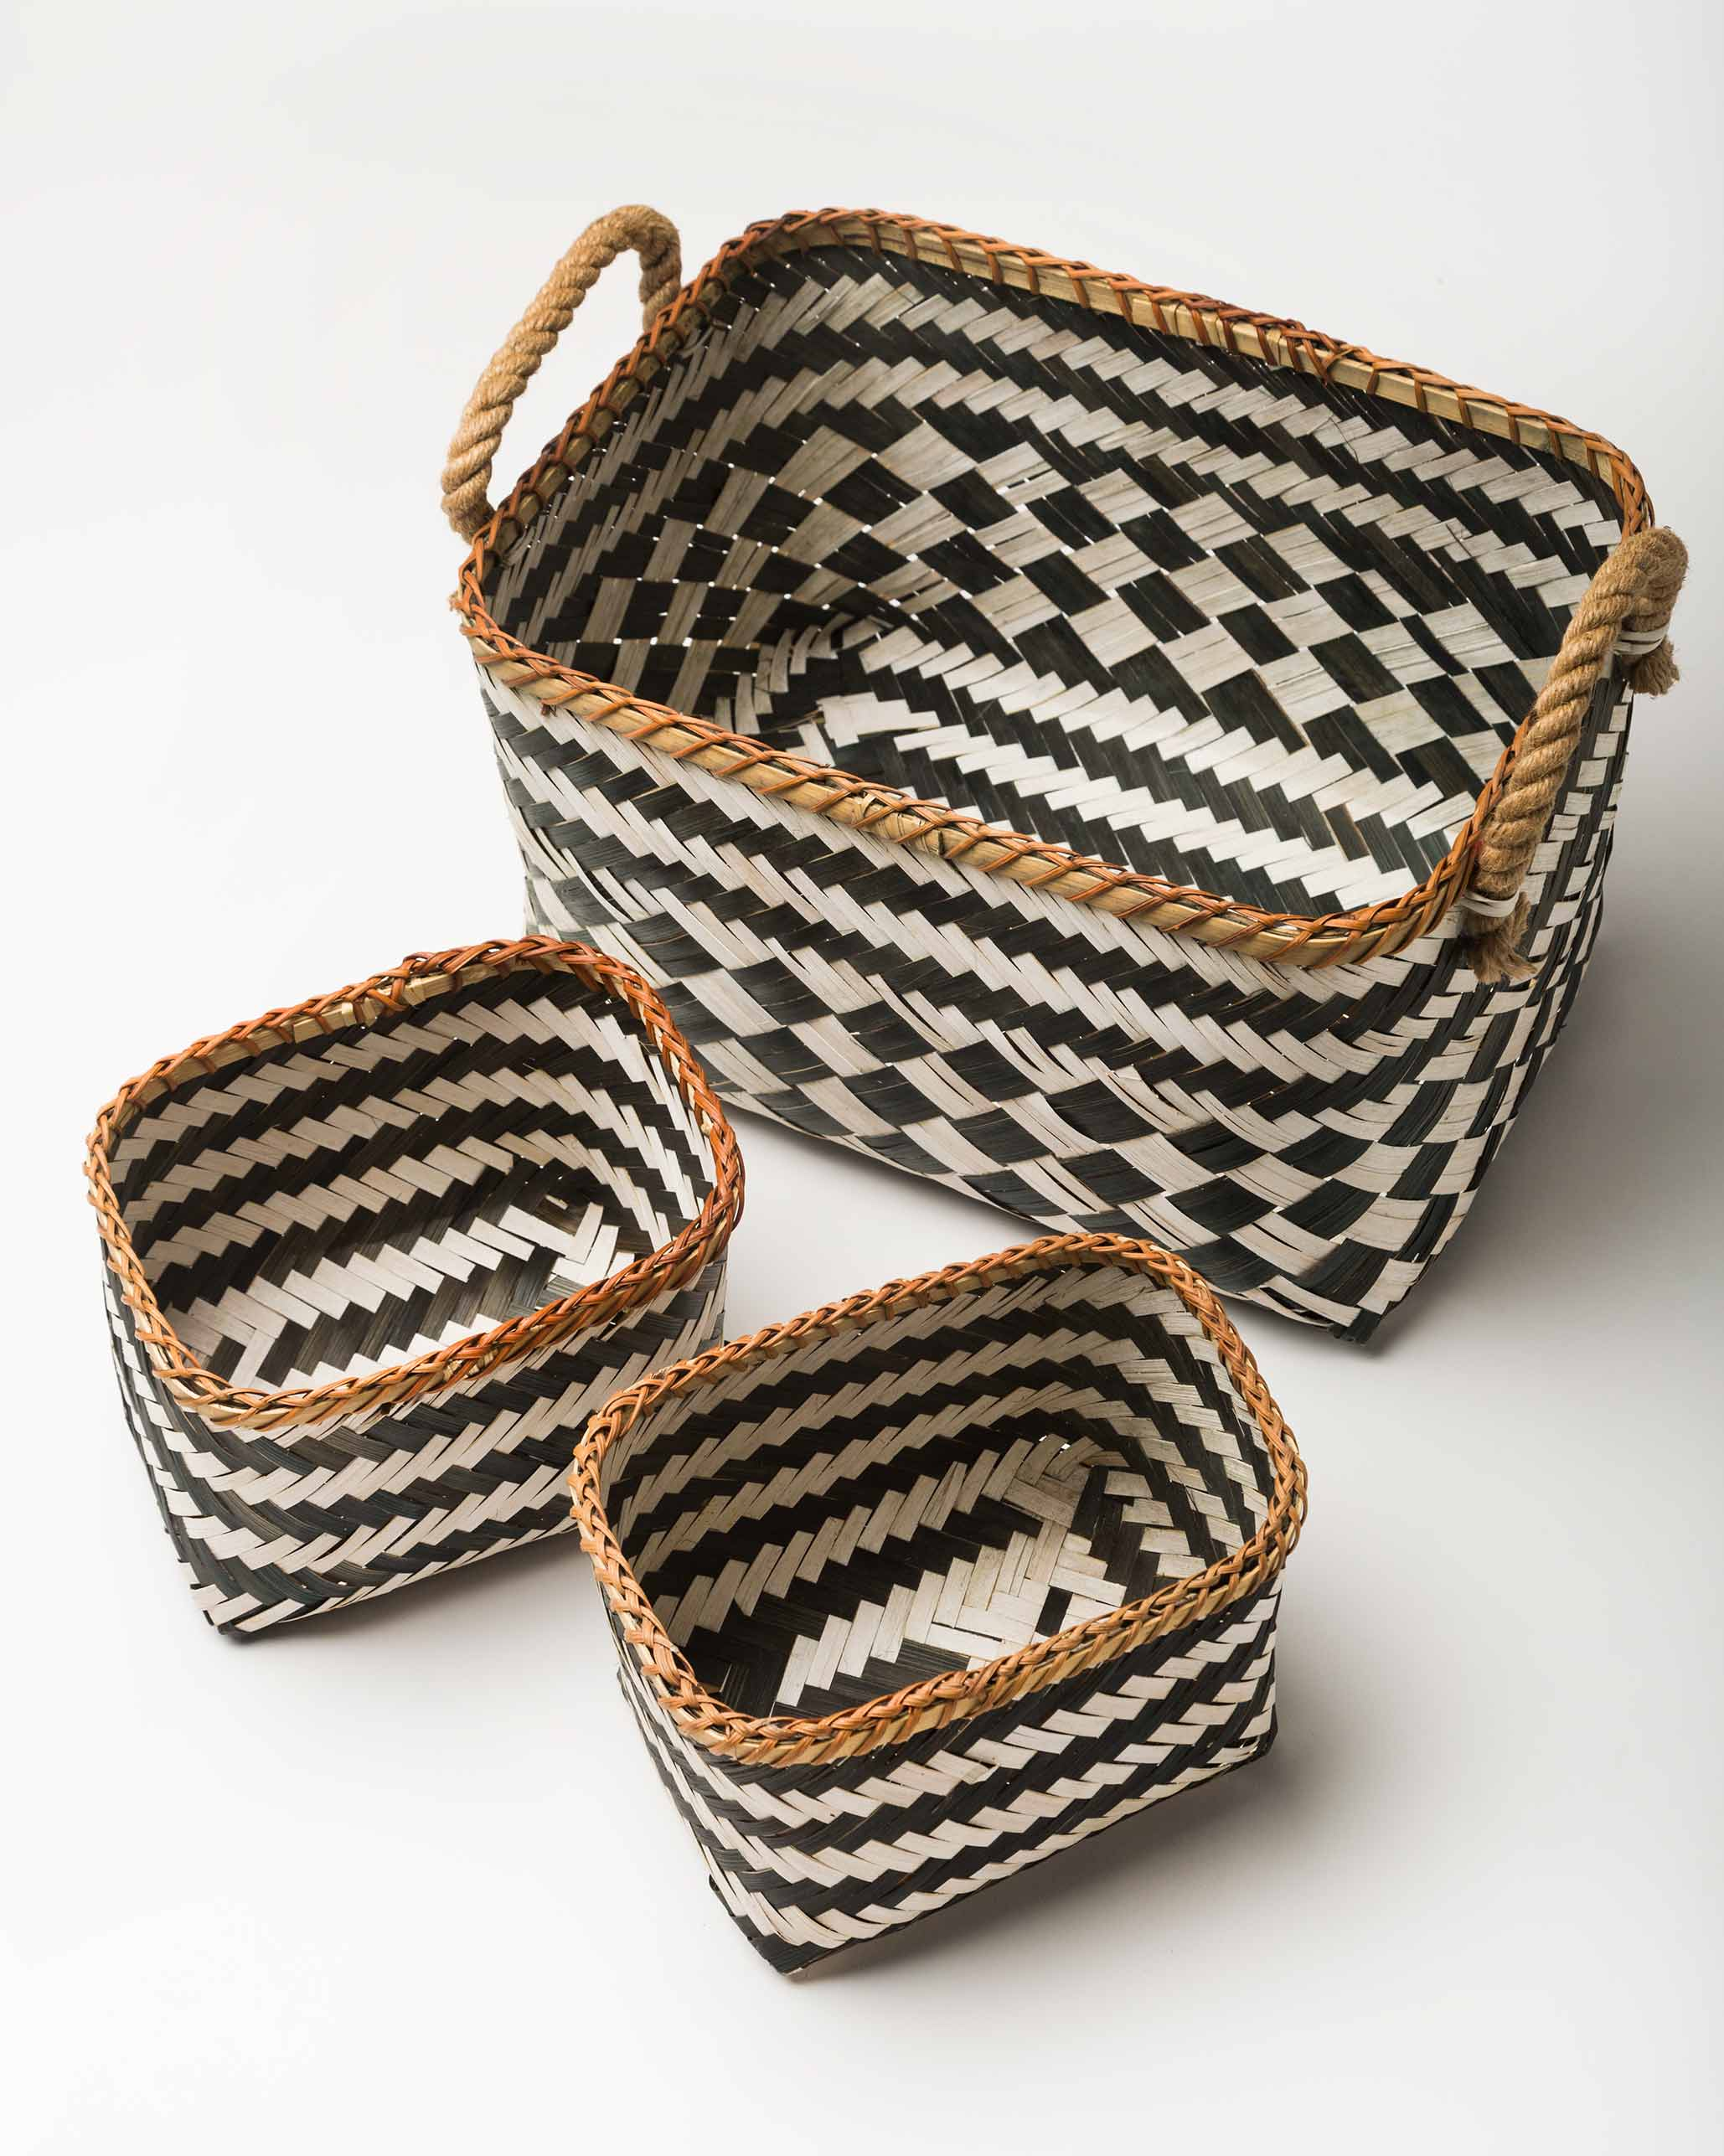 Ceylon Bamboo Basket (Set of 3) from New Arrivals collection at Nicobar